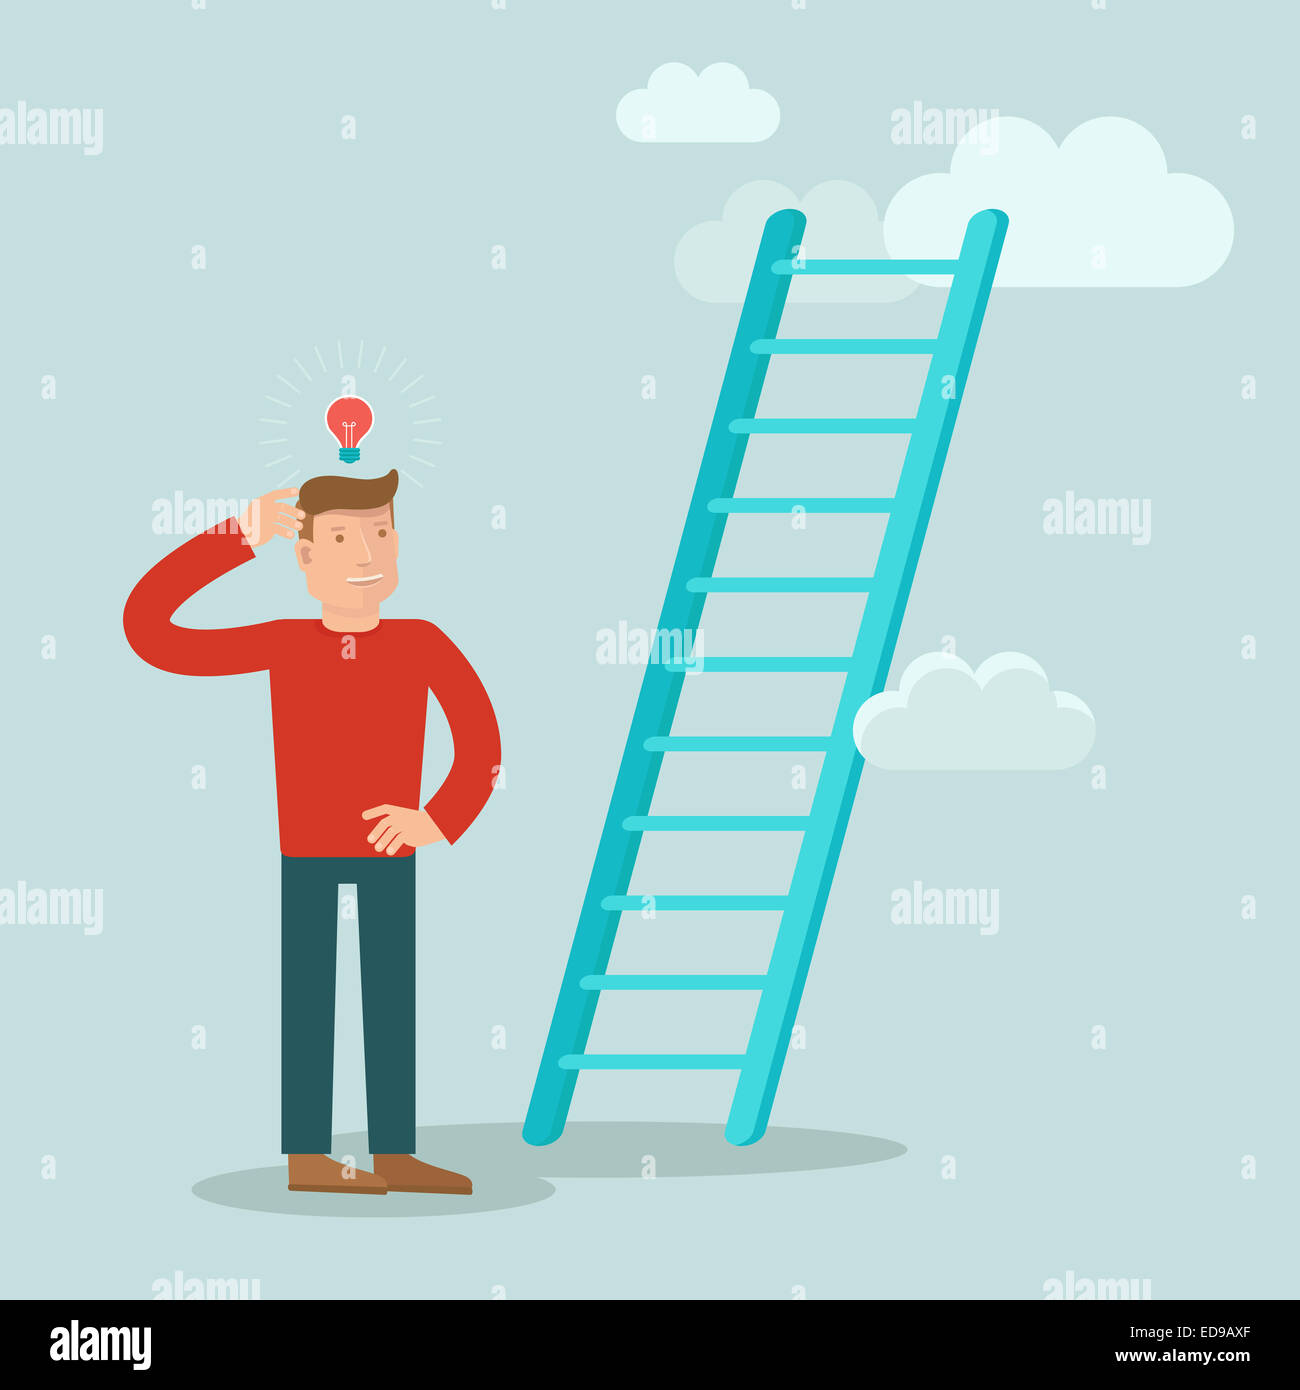 Business concept in flat style - male character solving problem how to improve career and achieve success - Stock Image